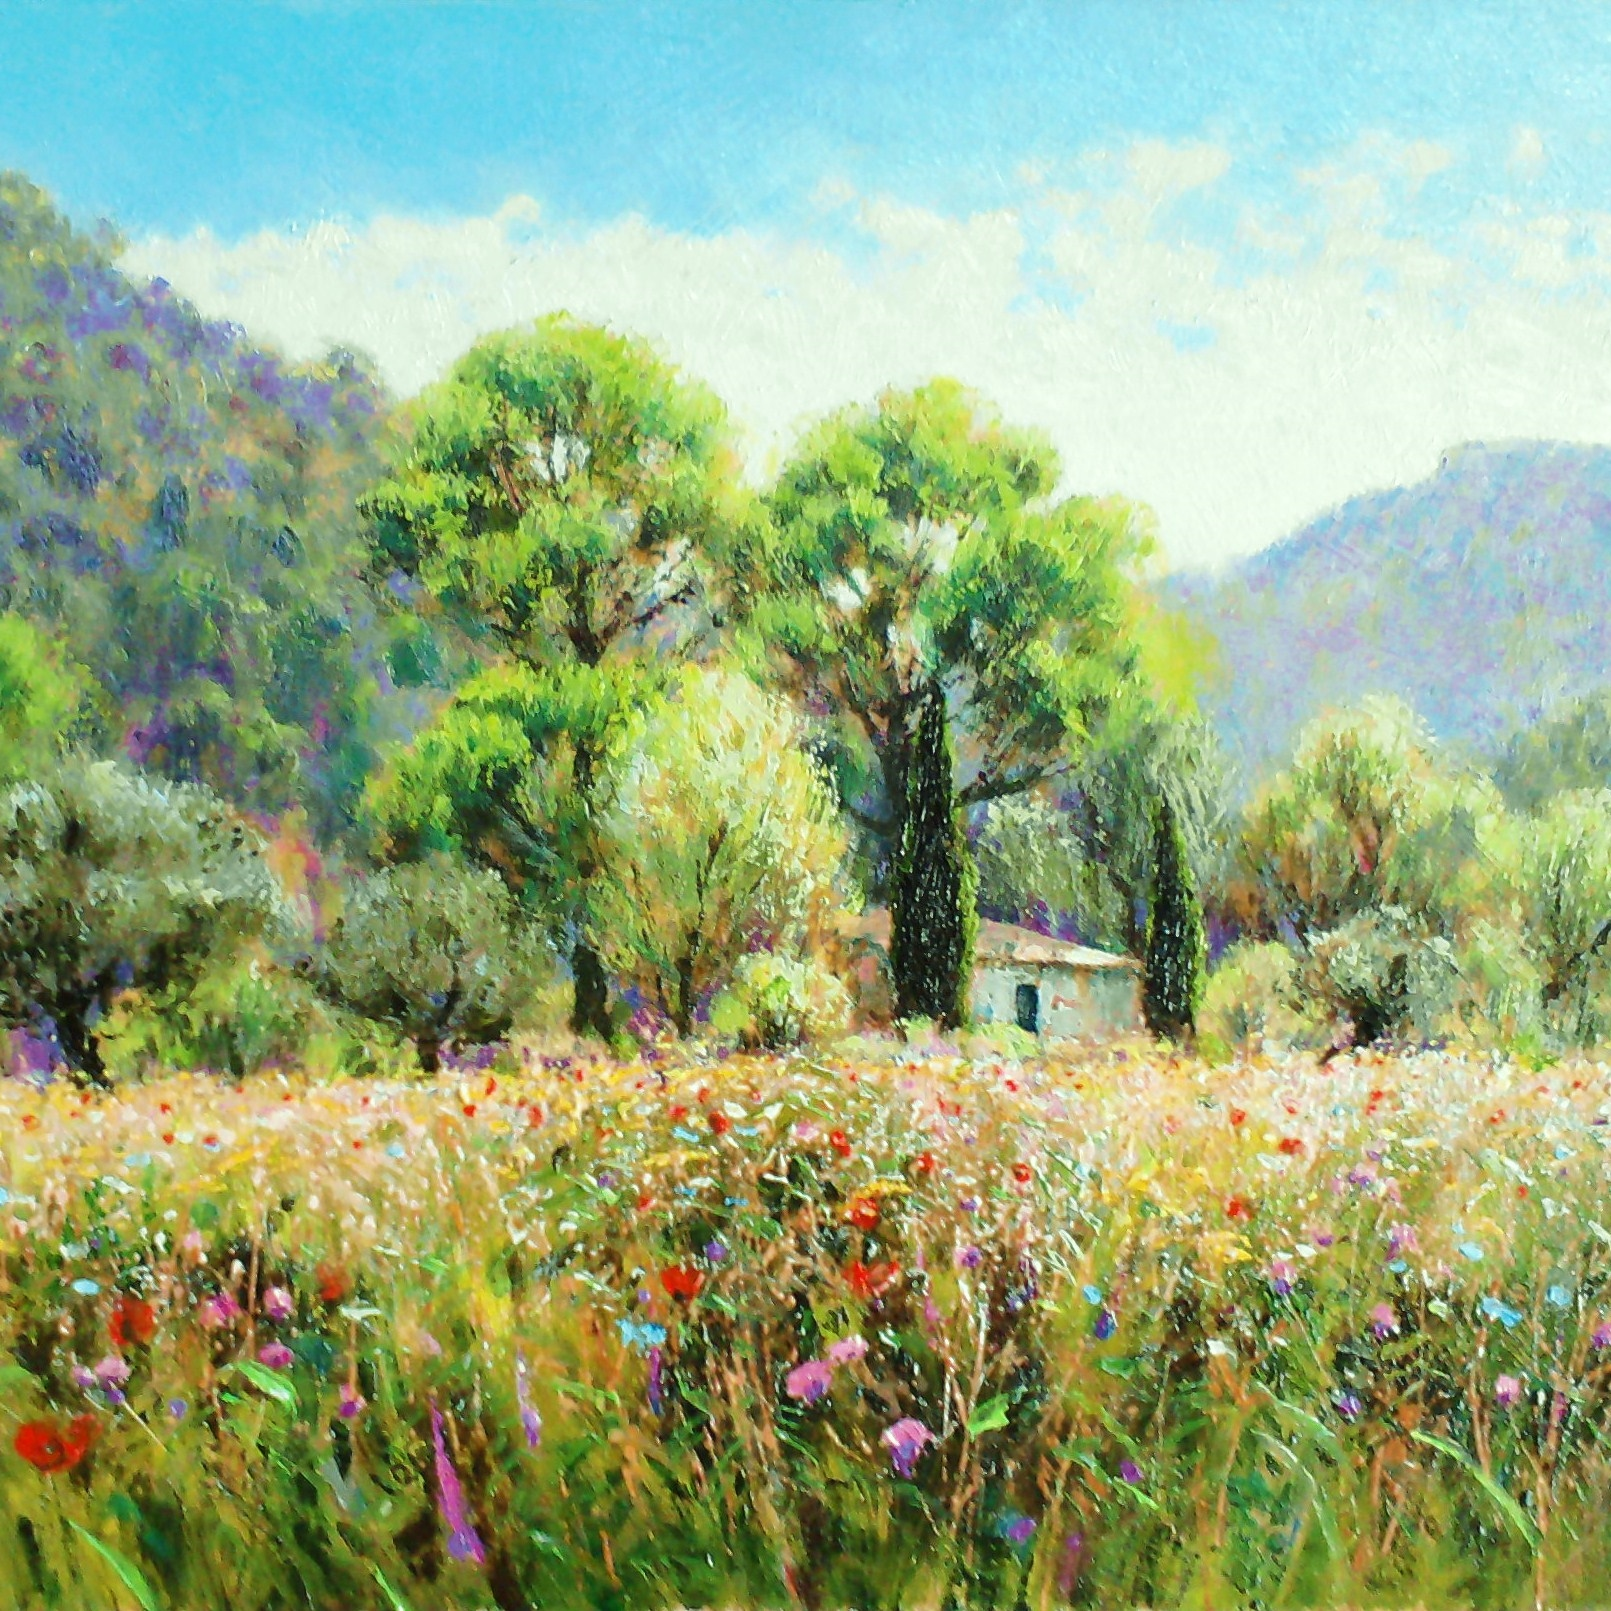 Flowerfield in the Corbieres